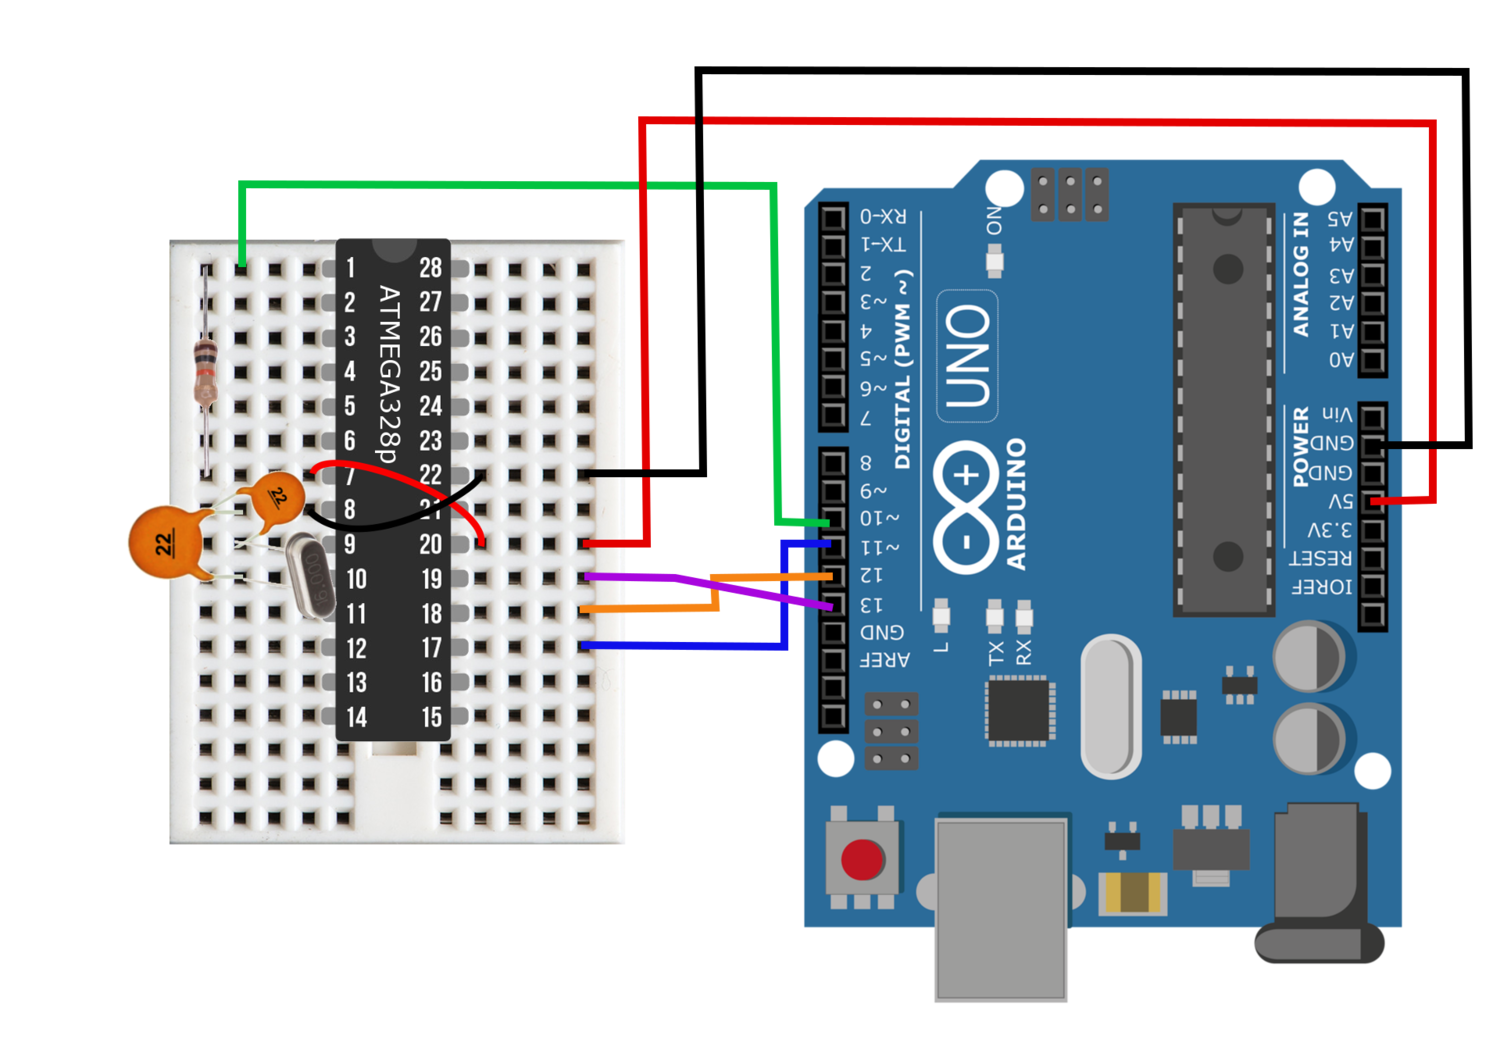 Using Raspberry Pi, HM-10, and Bluepy To Develop An iBeacon